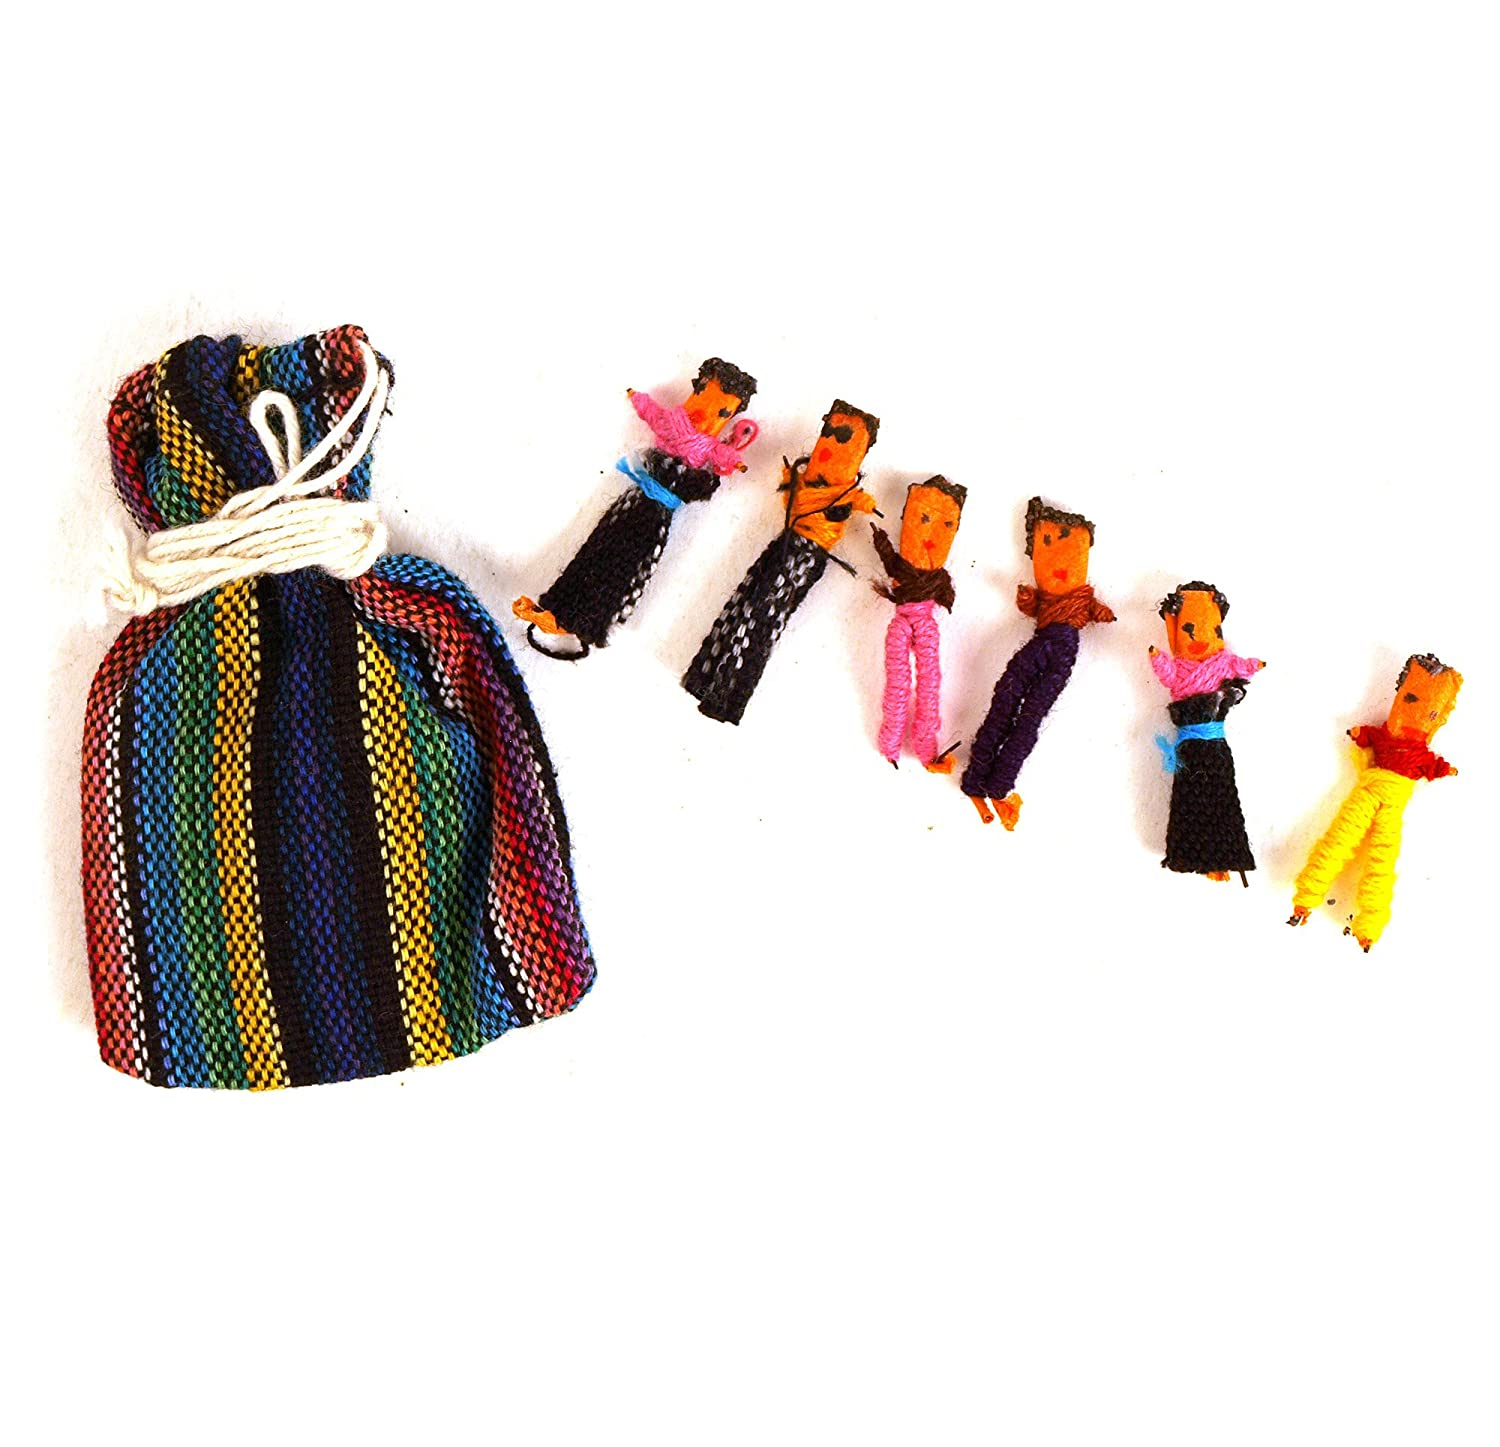 Amazon.com: Guatemala Worry Dolls - share your worries and lose ...